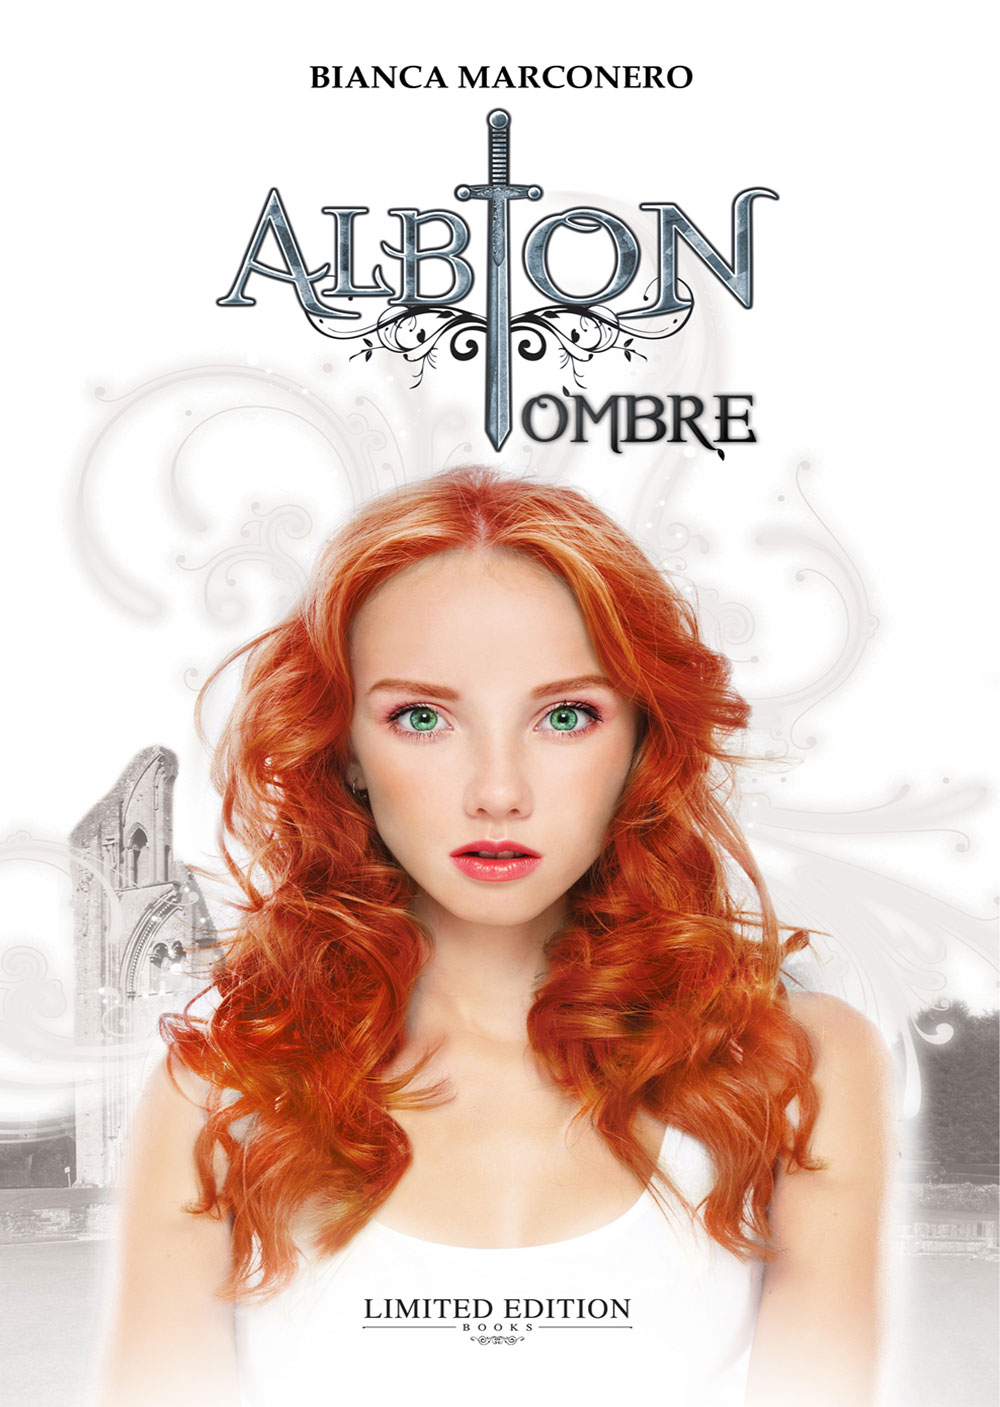 Albion 2. Ombre